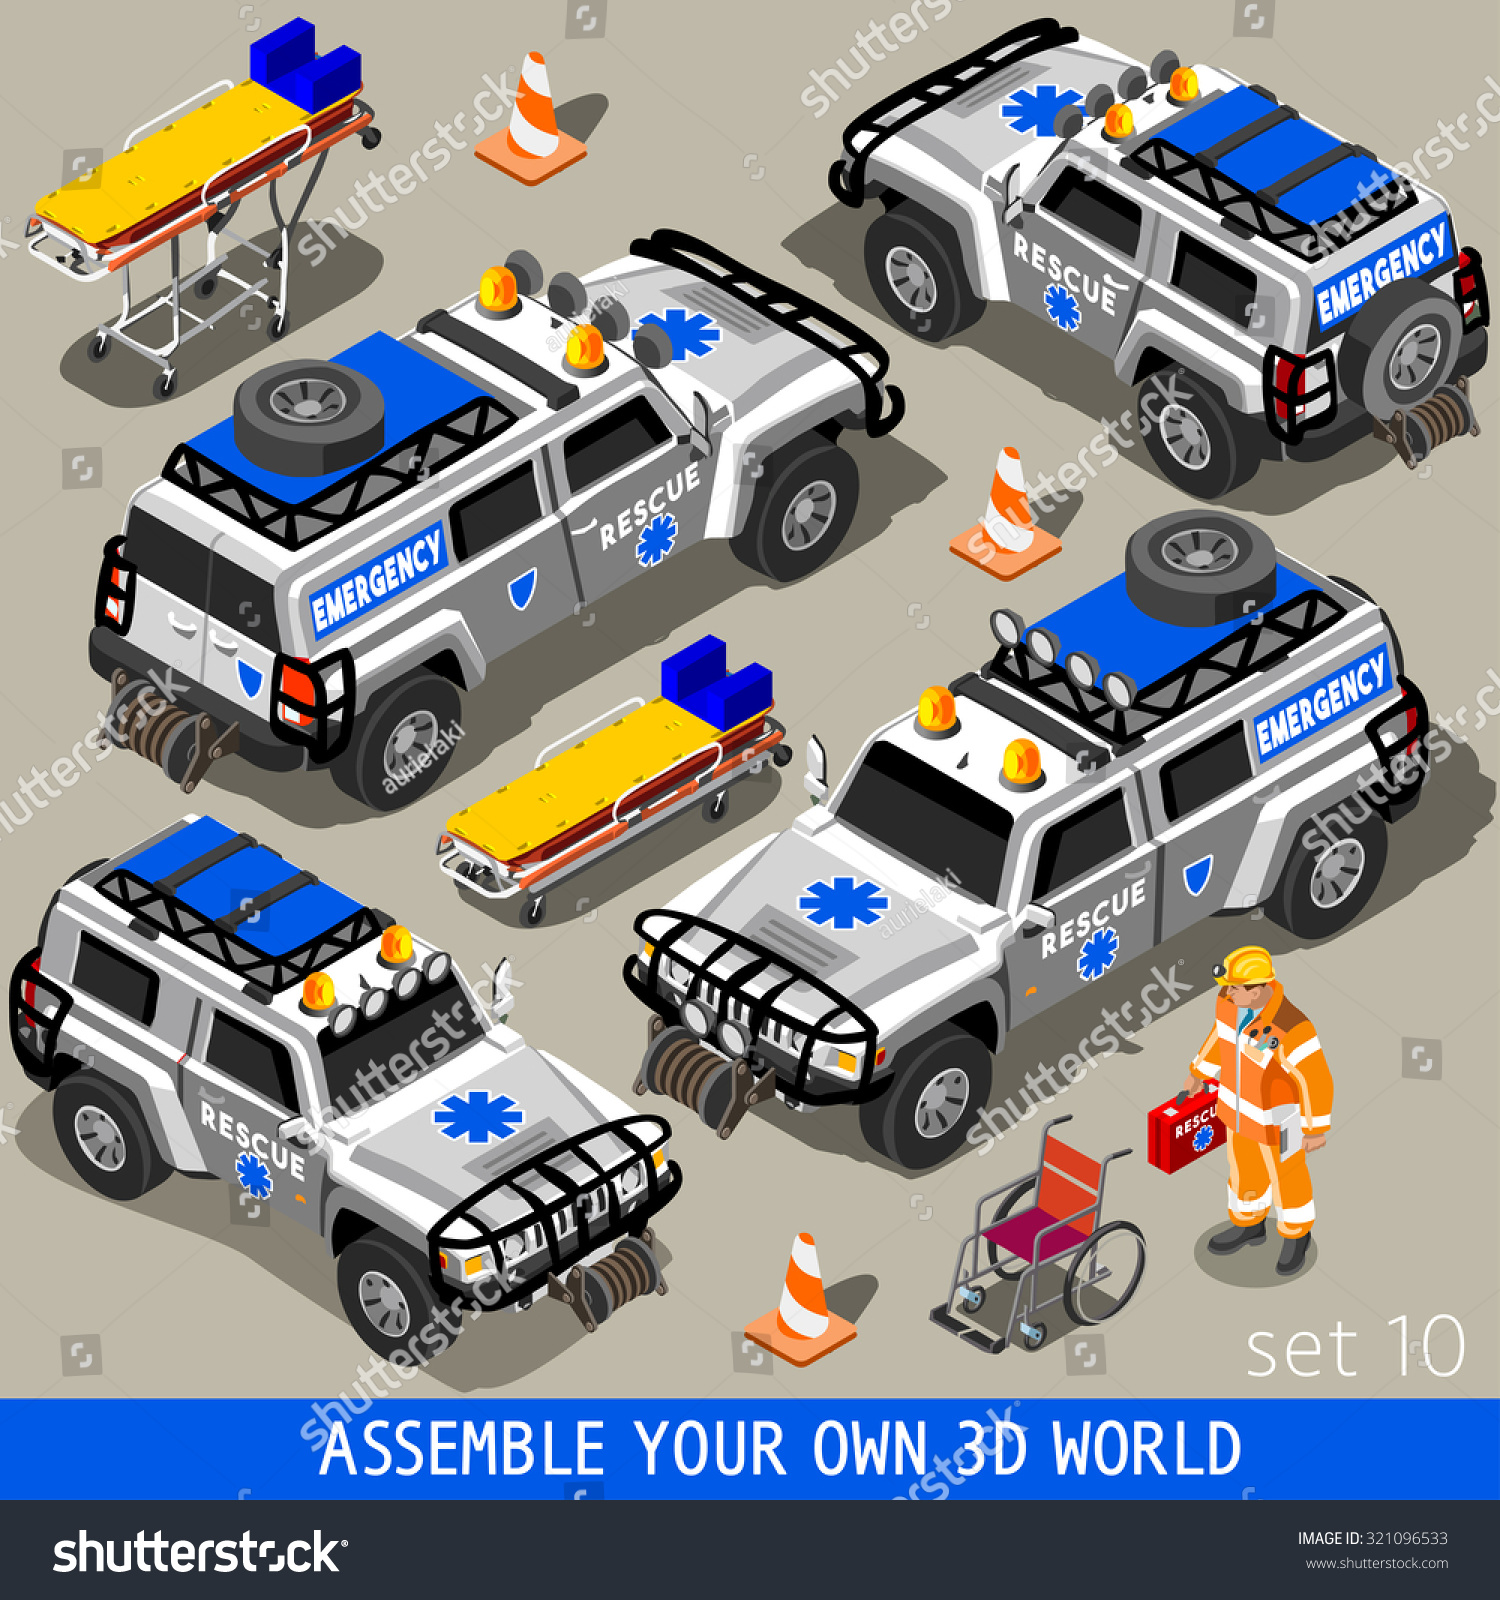 Ambulance White Rescue SUV Vehicle palette 3D Flat Vector Icon Set First Aid Equipment and Paramedic Man Assemble your Own 3D World JPG JPEG Image Drawing Object Picture Graphic Art EPS 10 AI